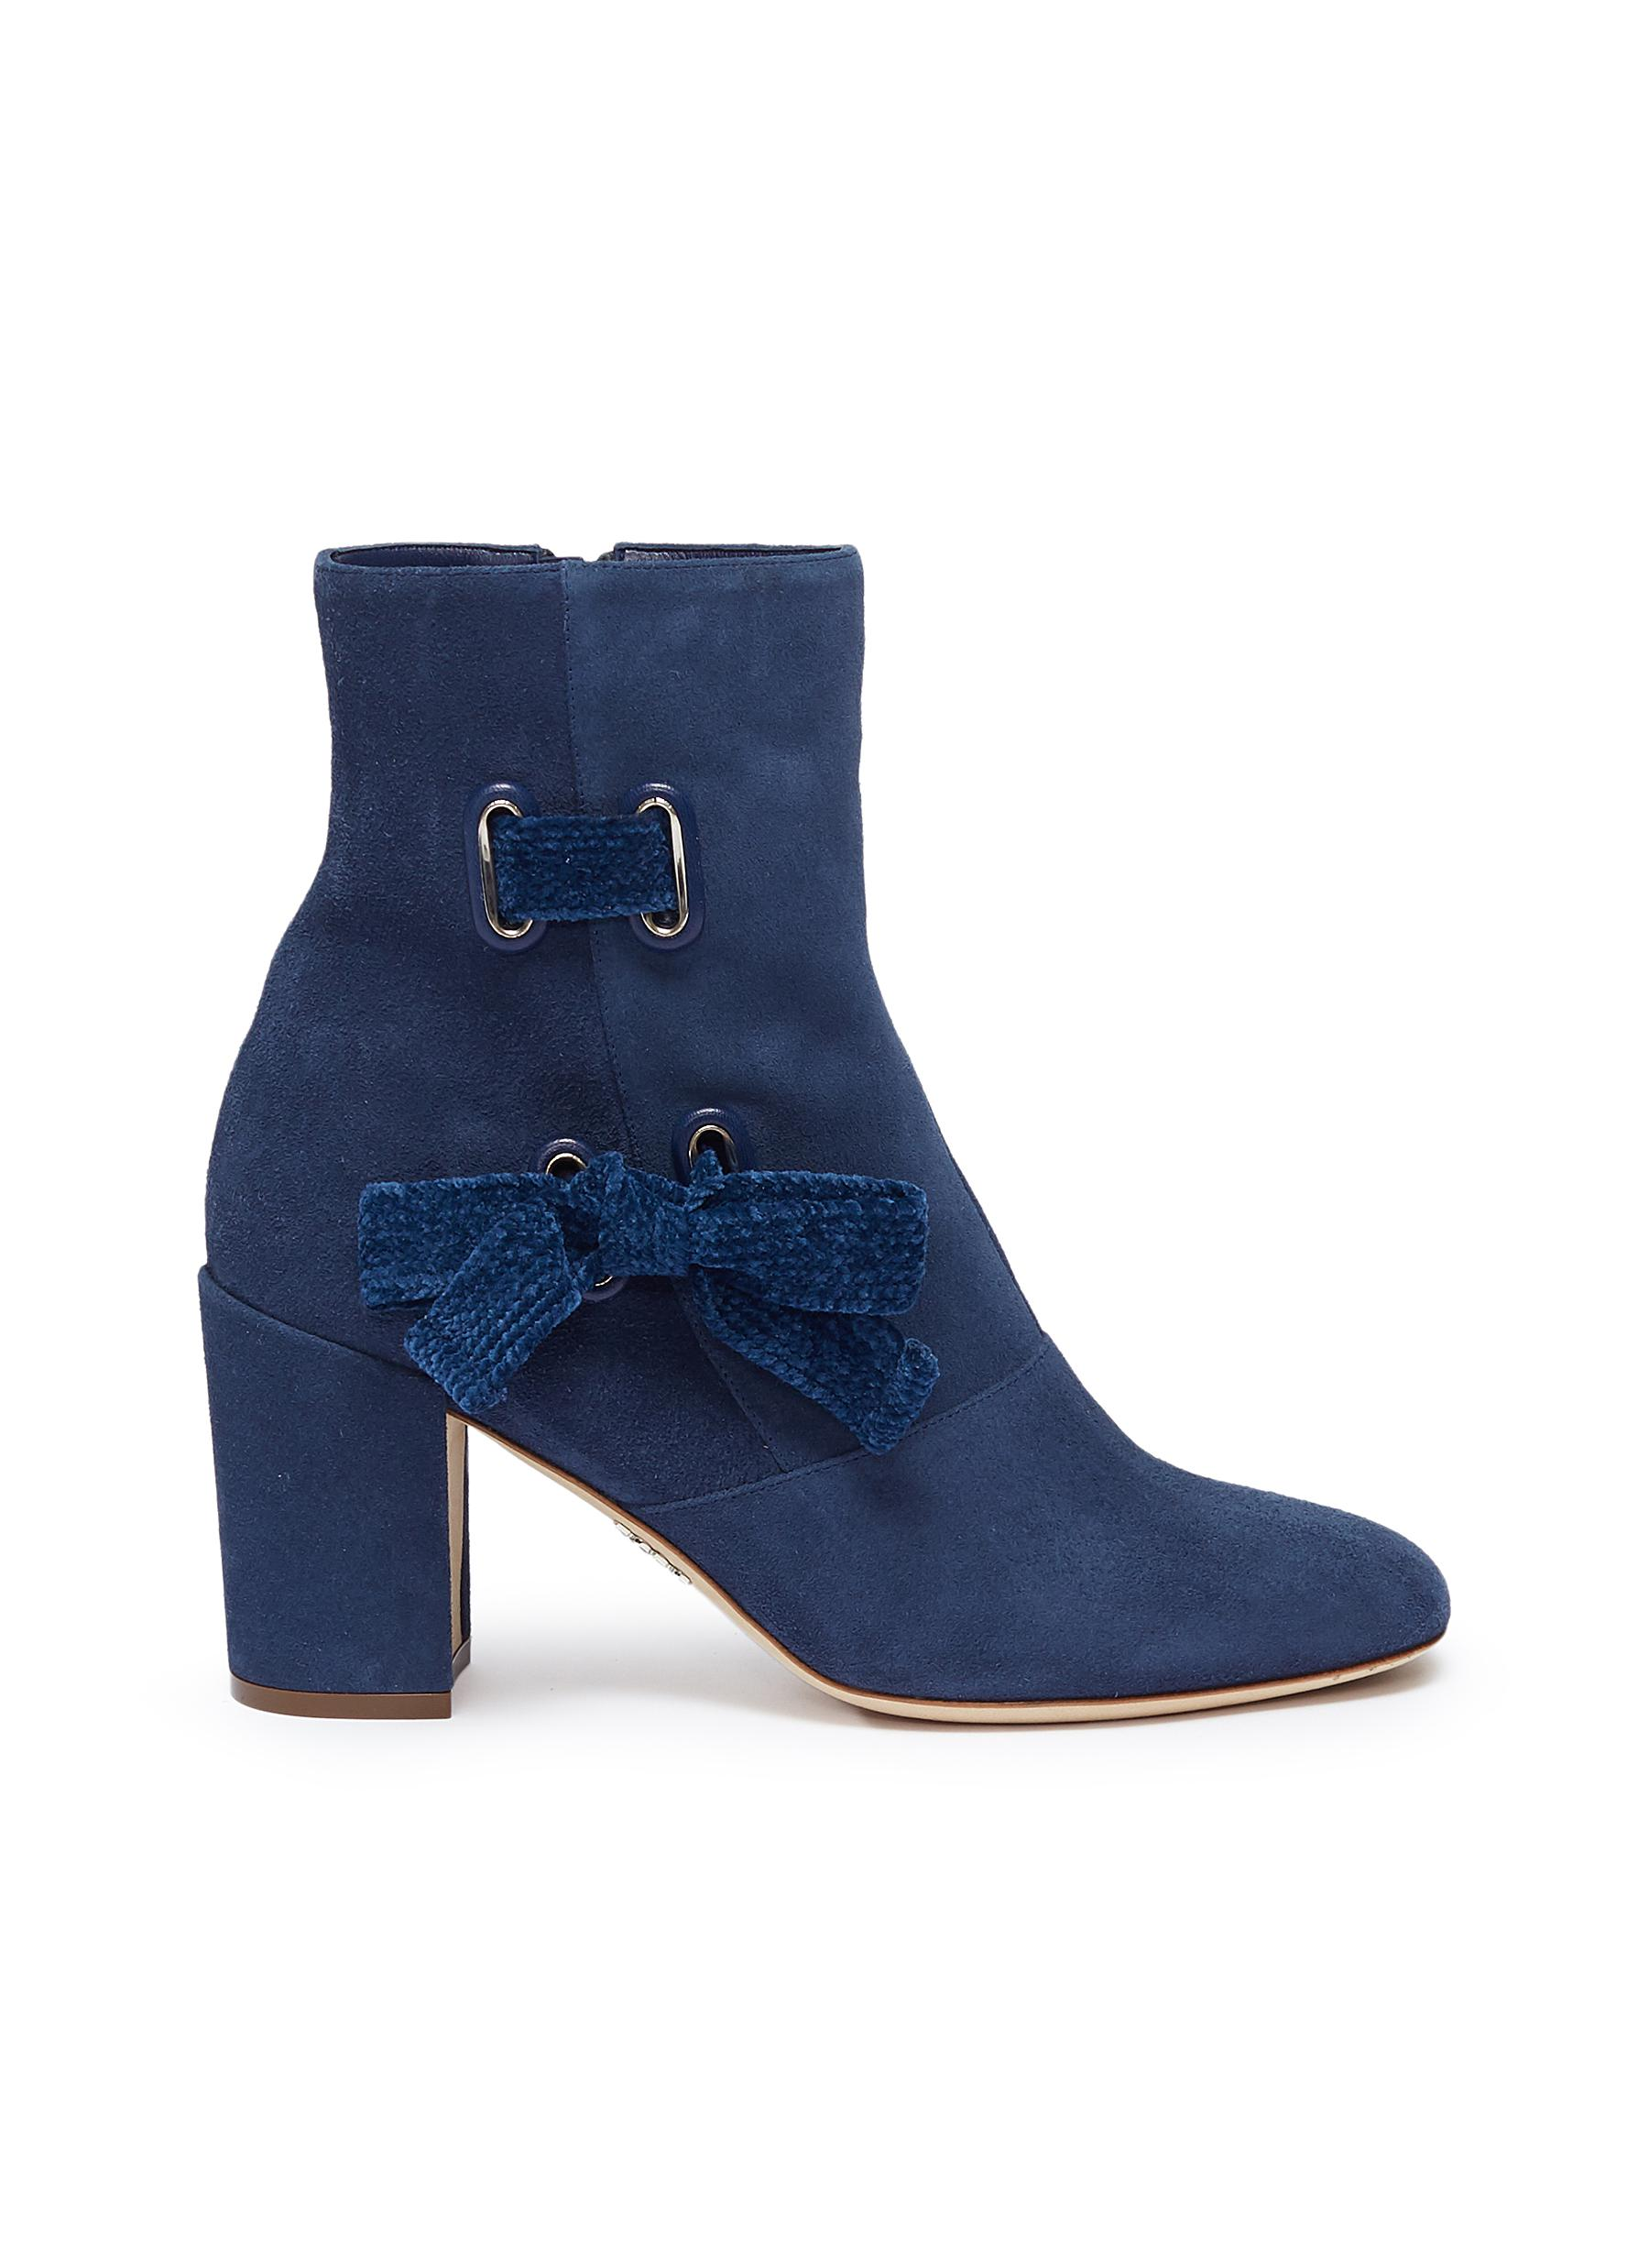 Ribbon suede ankle boots by RODO